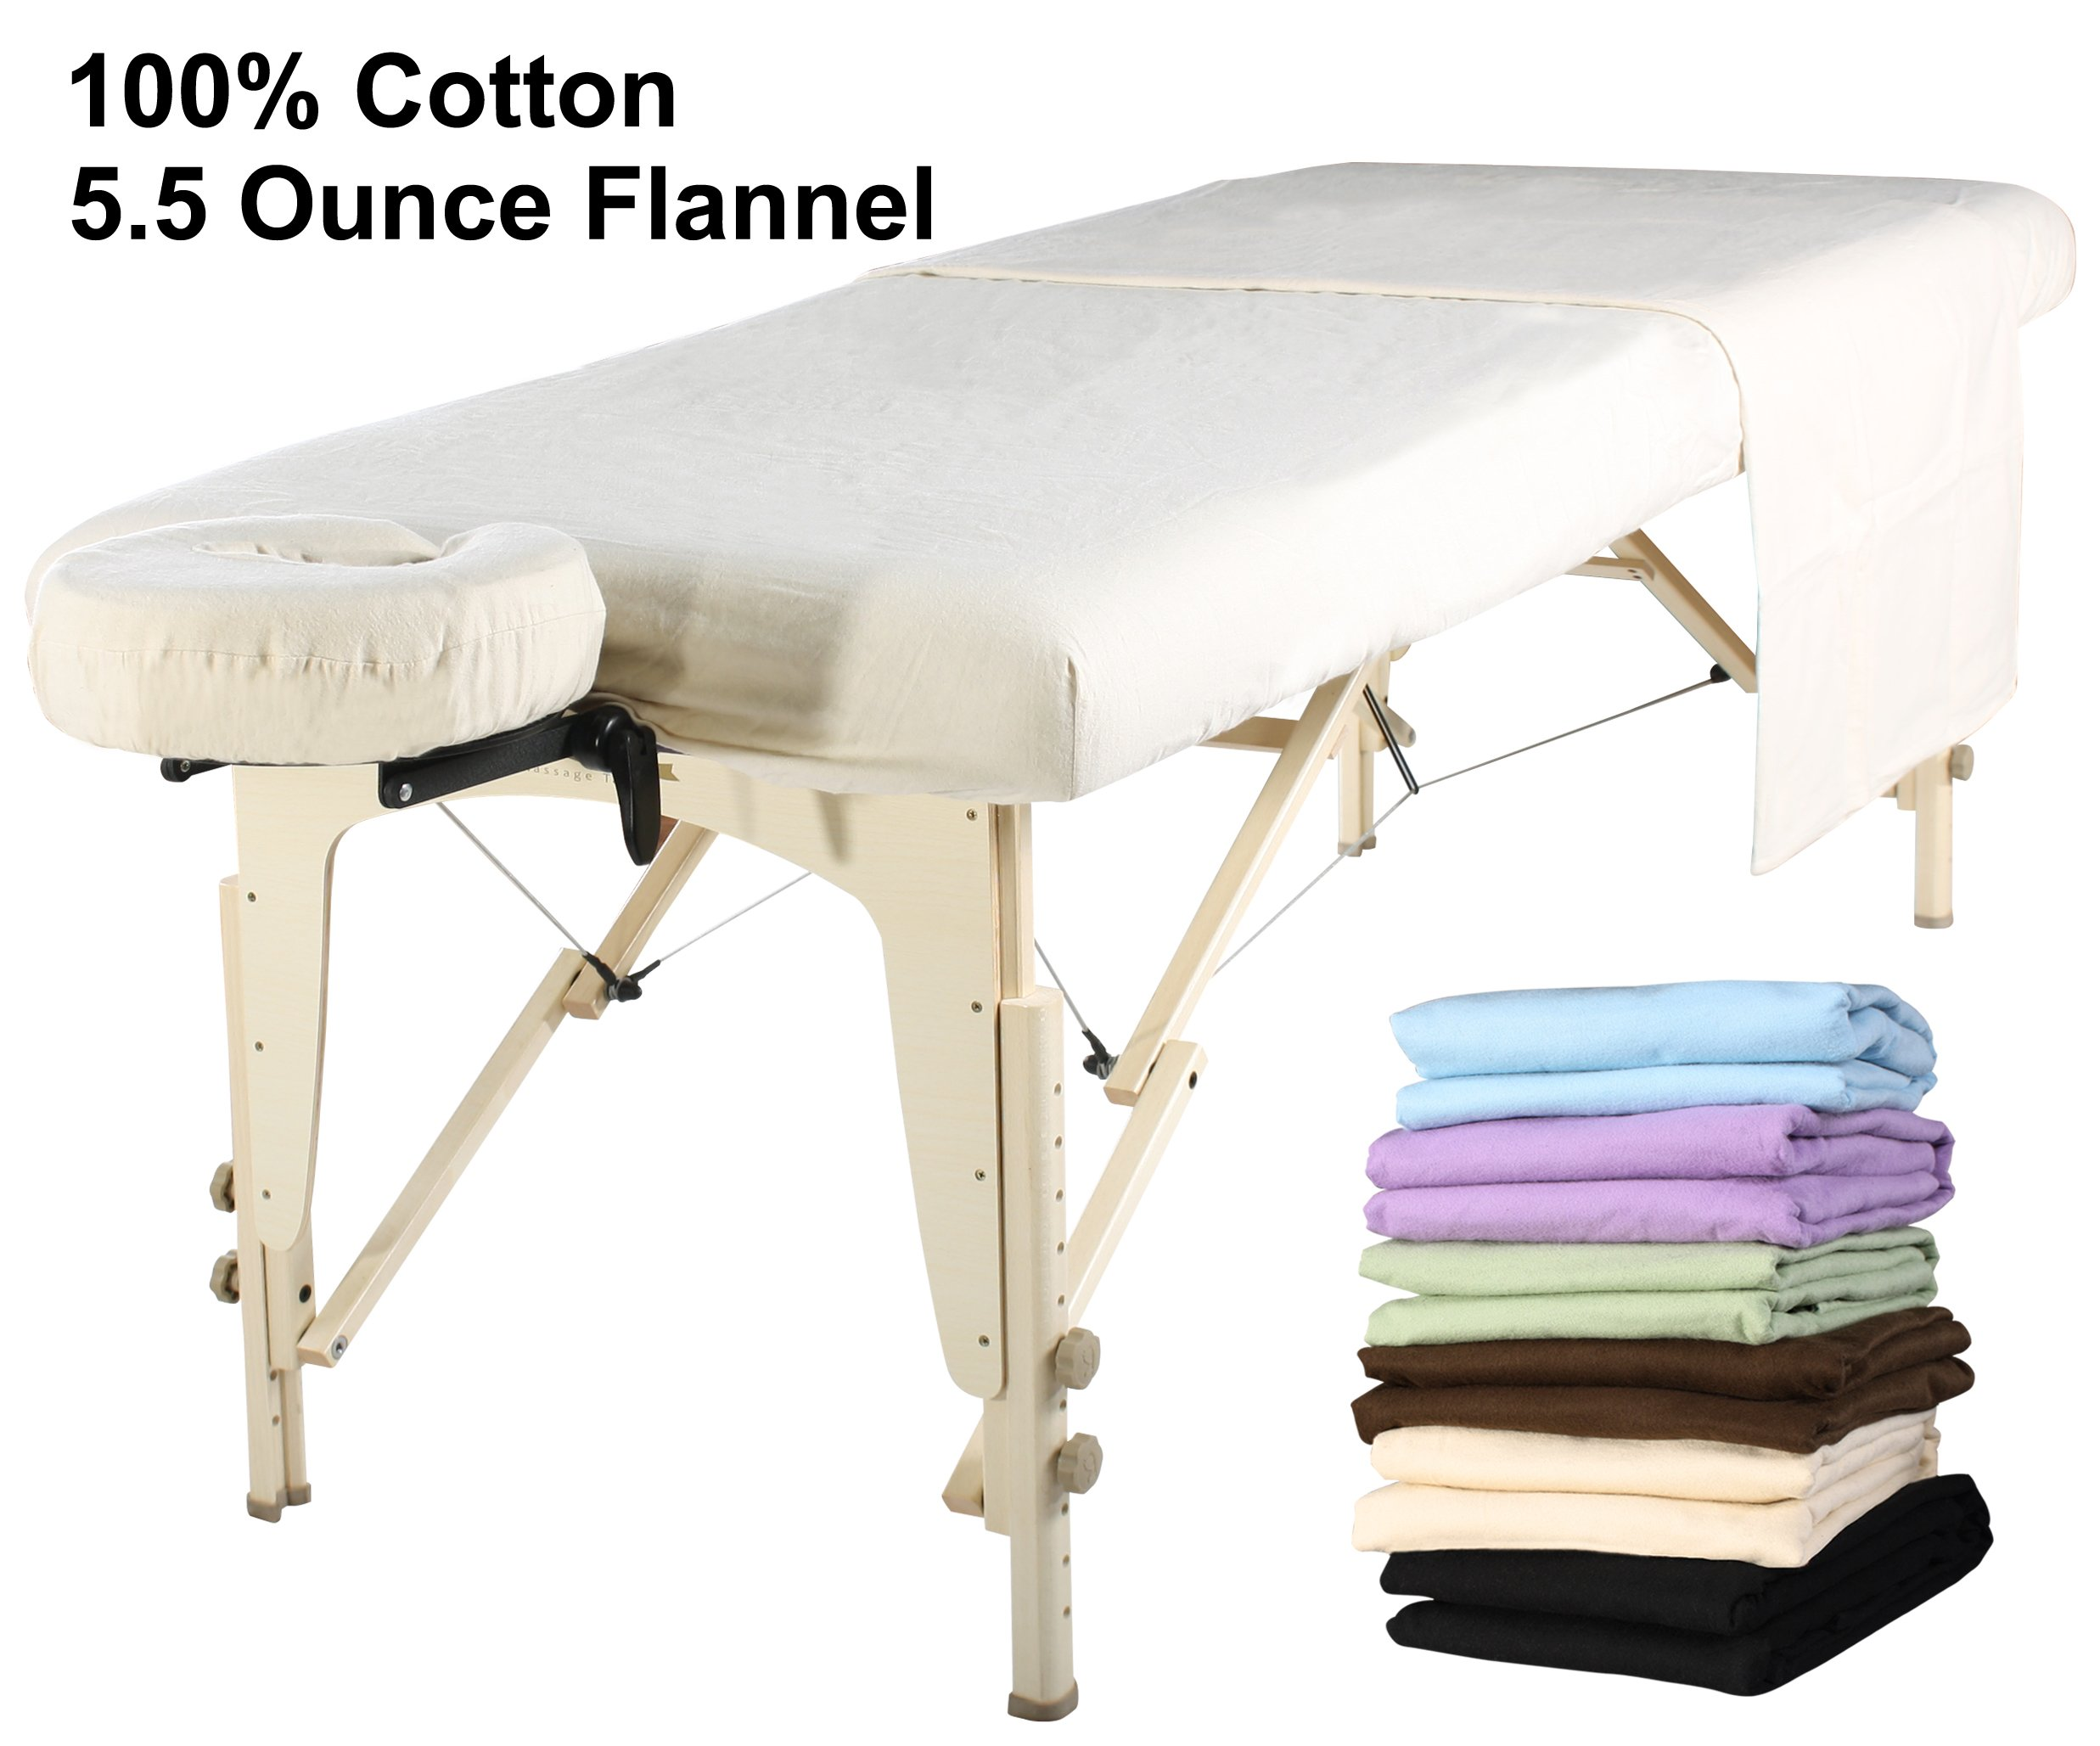 Master Massage Universal Massage Table Flannel Sheet Set 3 in 1 Table Cover, Face Cushion Cover, Table Sheet, Pure White